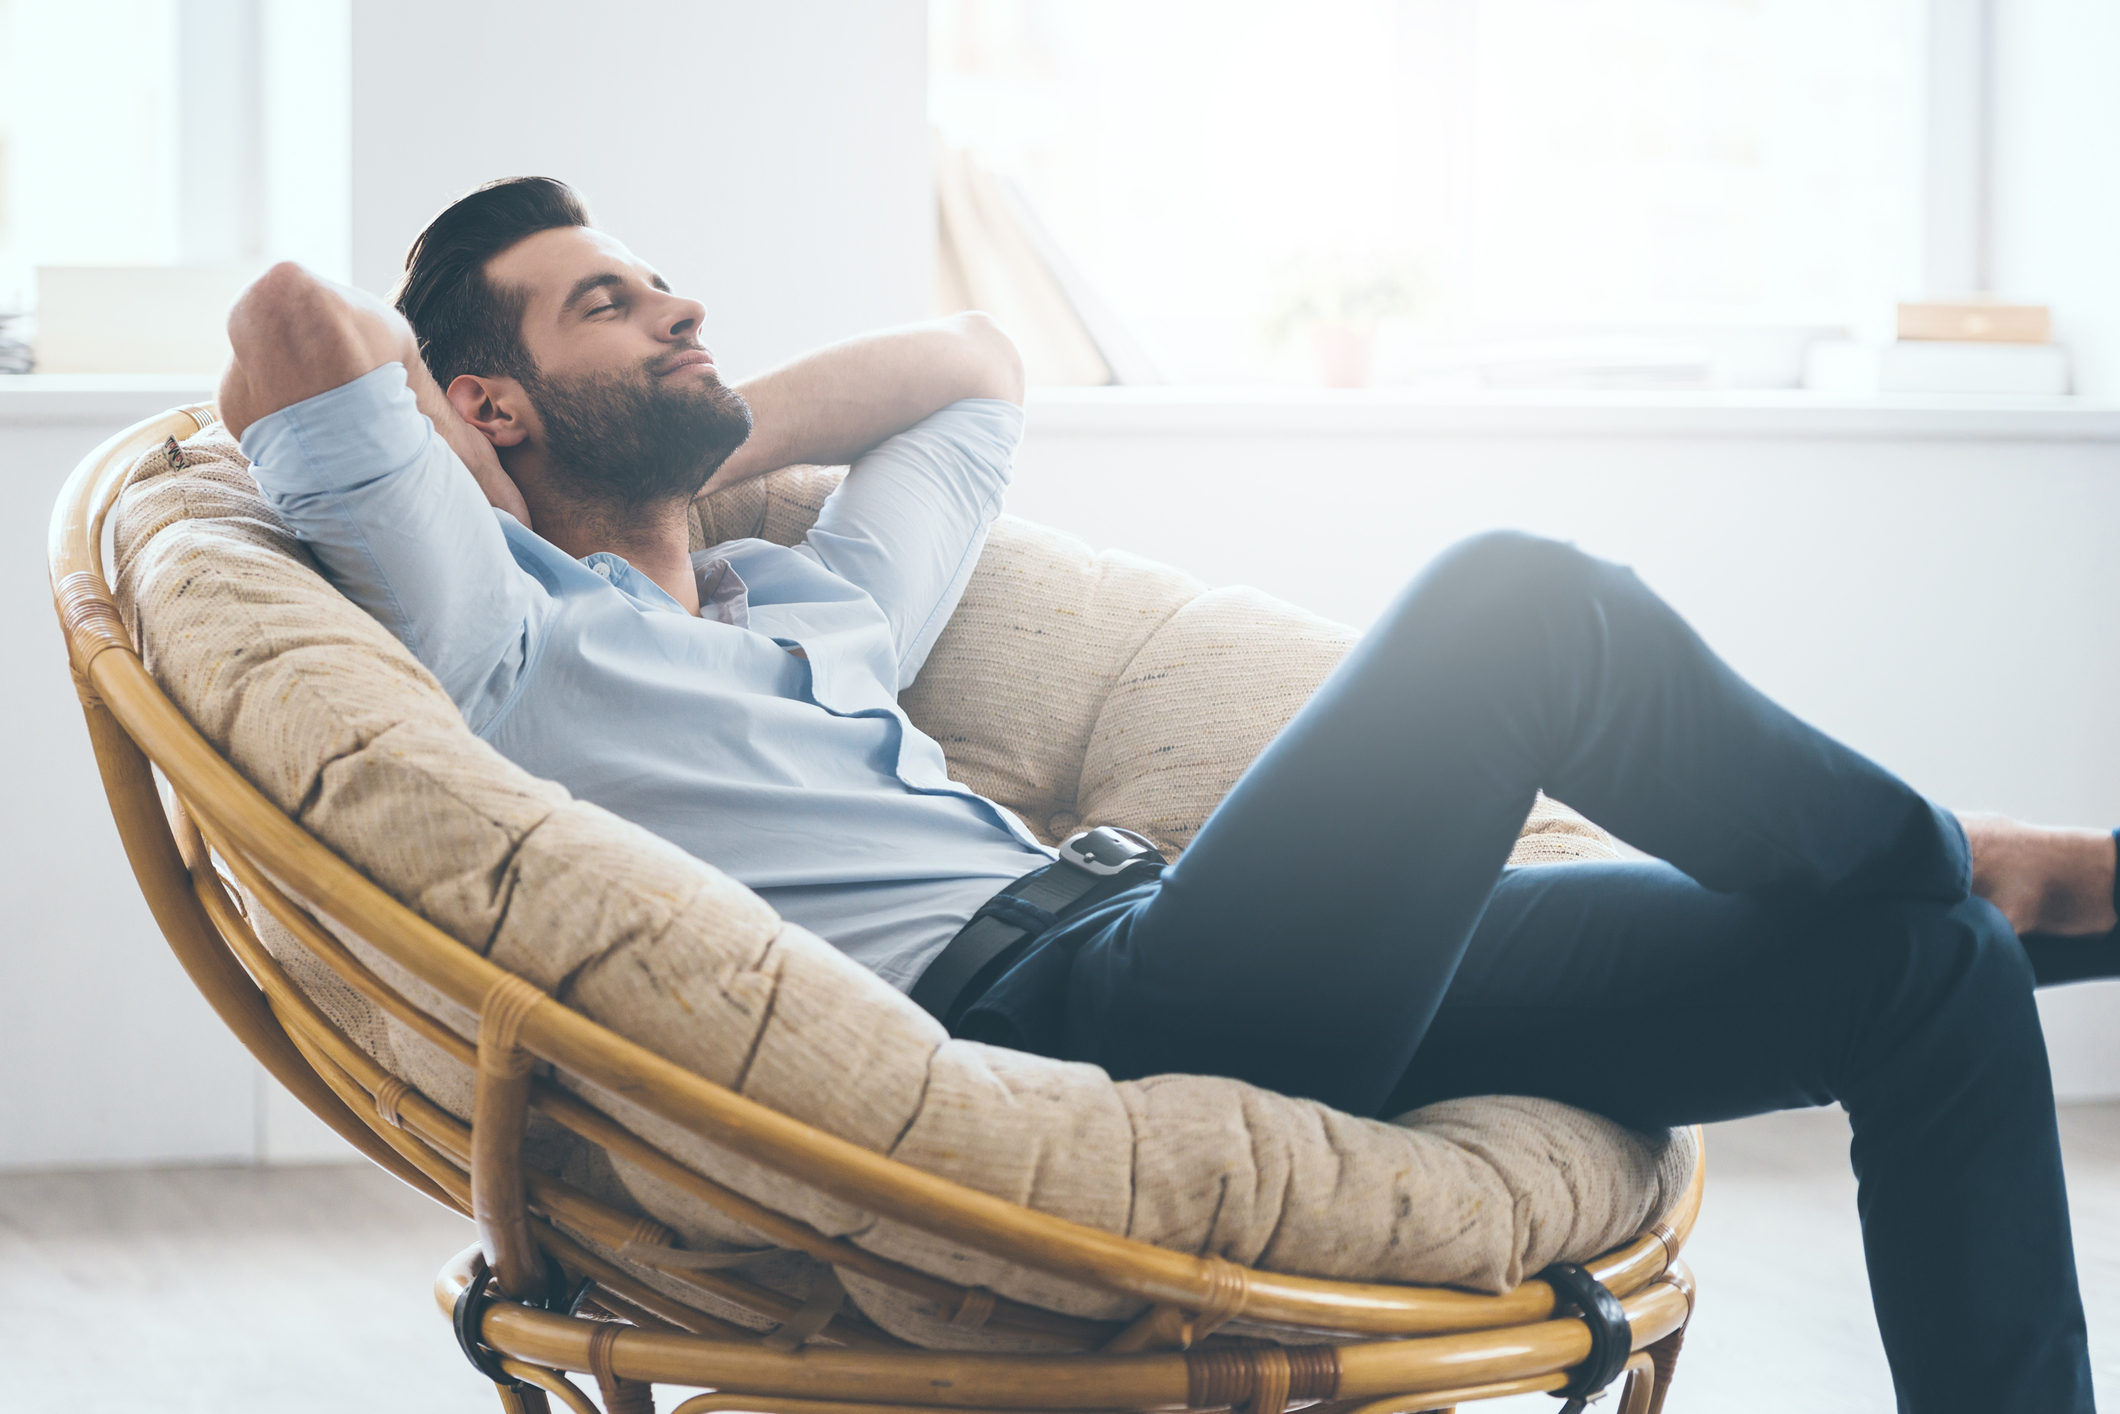 Generic photo of man reclining in a comfy chair (Thinkstock/PA)